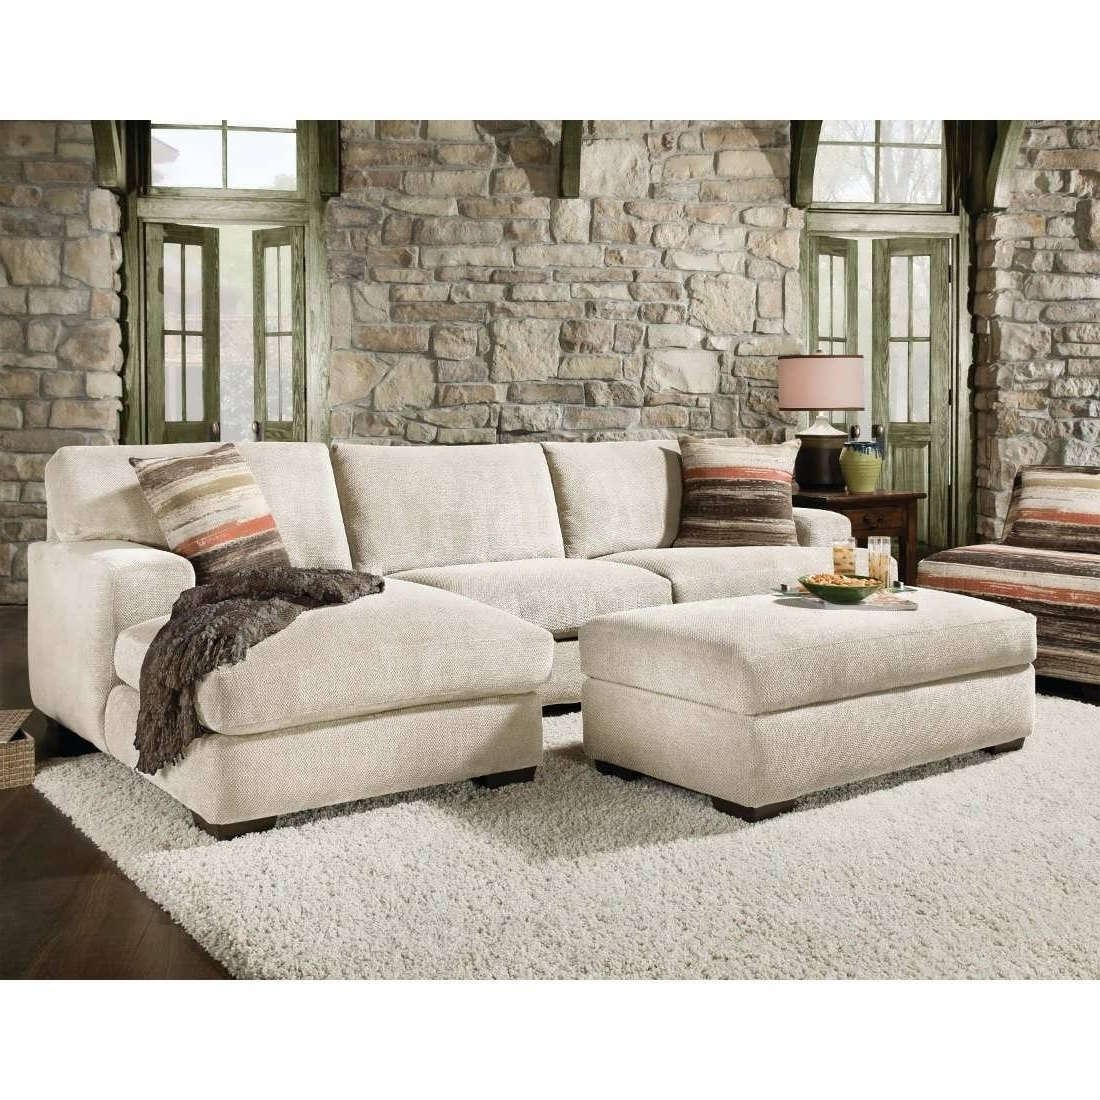 Cream Chaise Sofas within Preferred Sofa : Double Chaise Sofa Sleeper Sofa With Chaise Grey Sectional